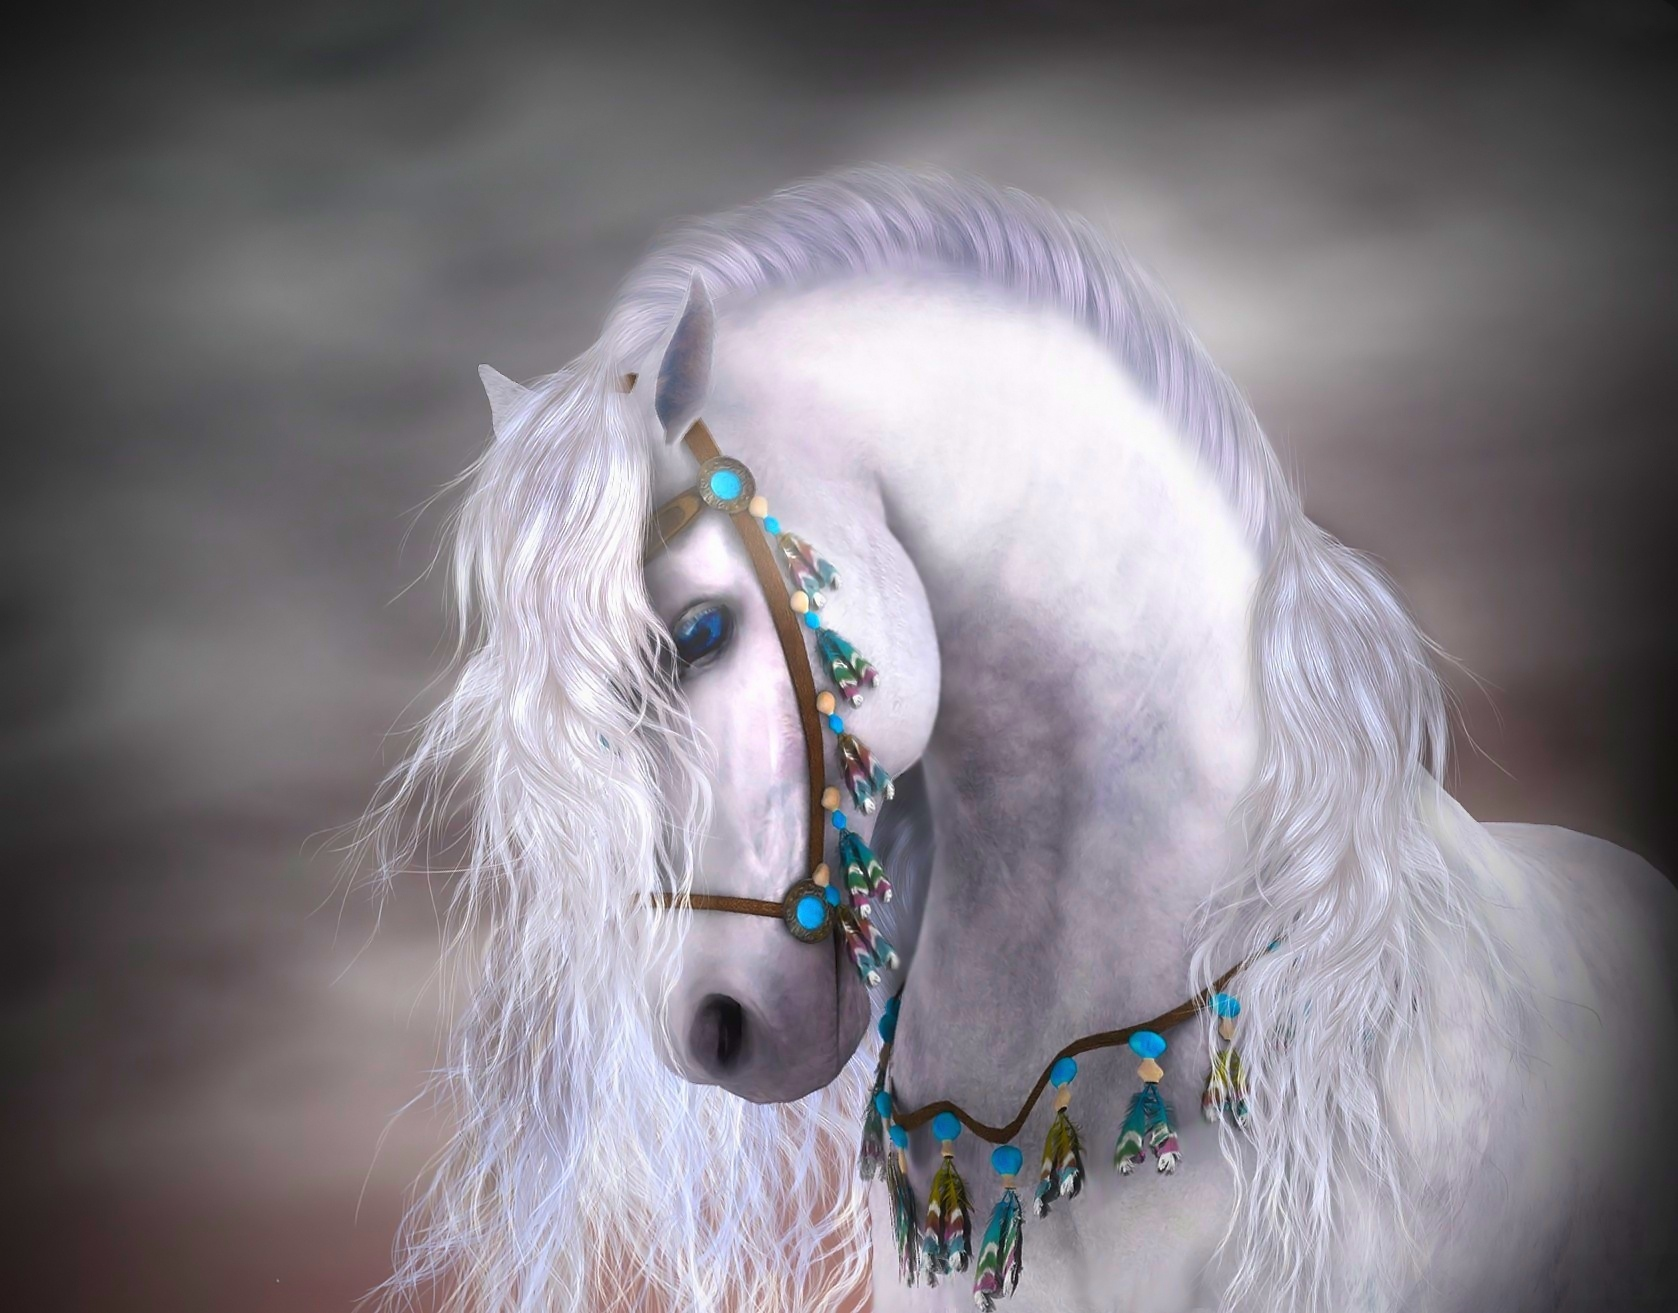 White Horse Wallpaper And Background Image 1678x1313 Id 682981 Wallpaper Abyss